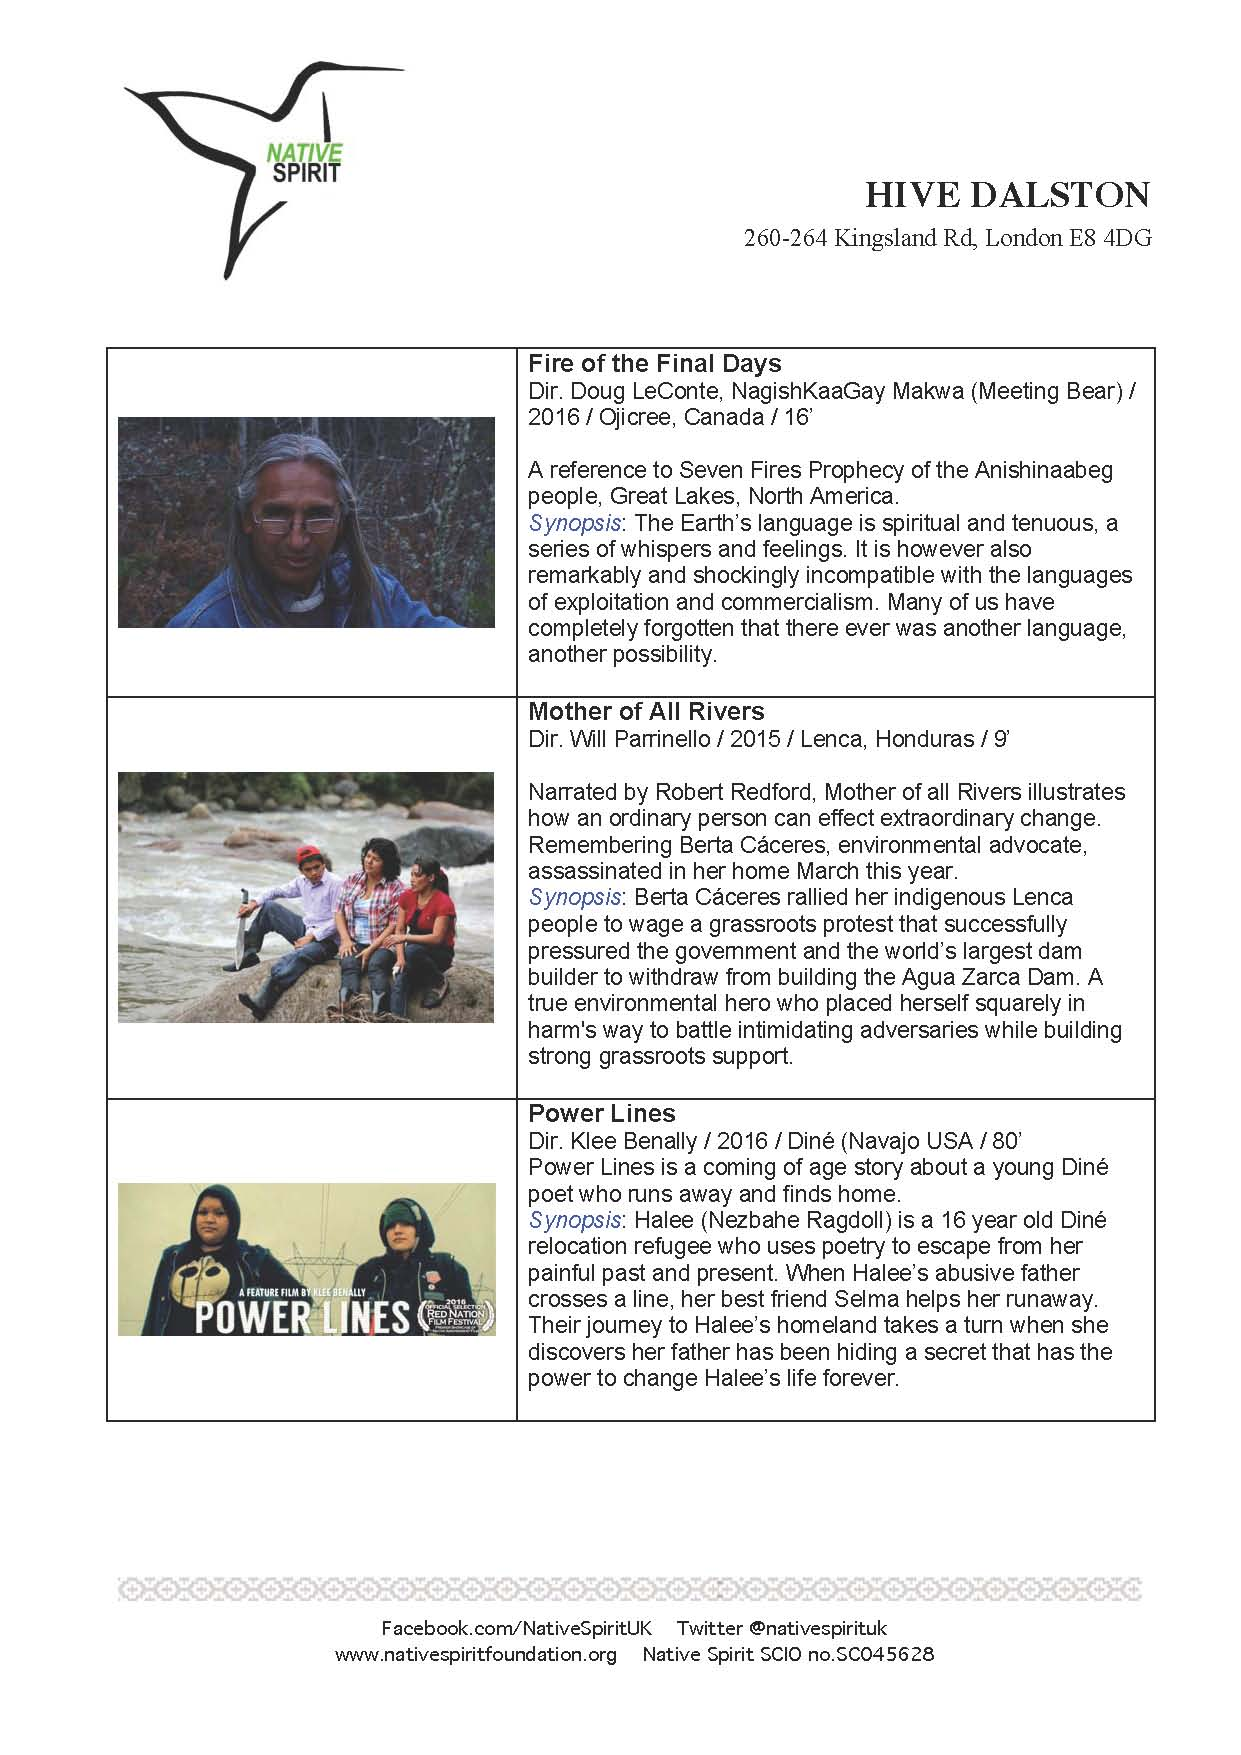 v2_7oct16-native-spirit-the-hive_page_2